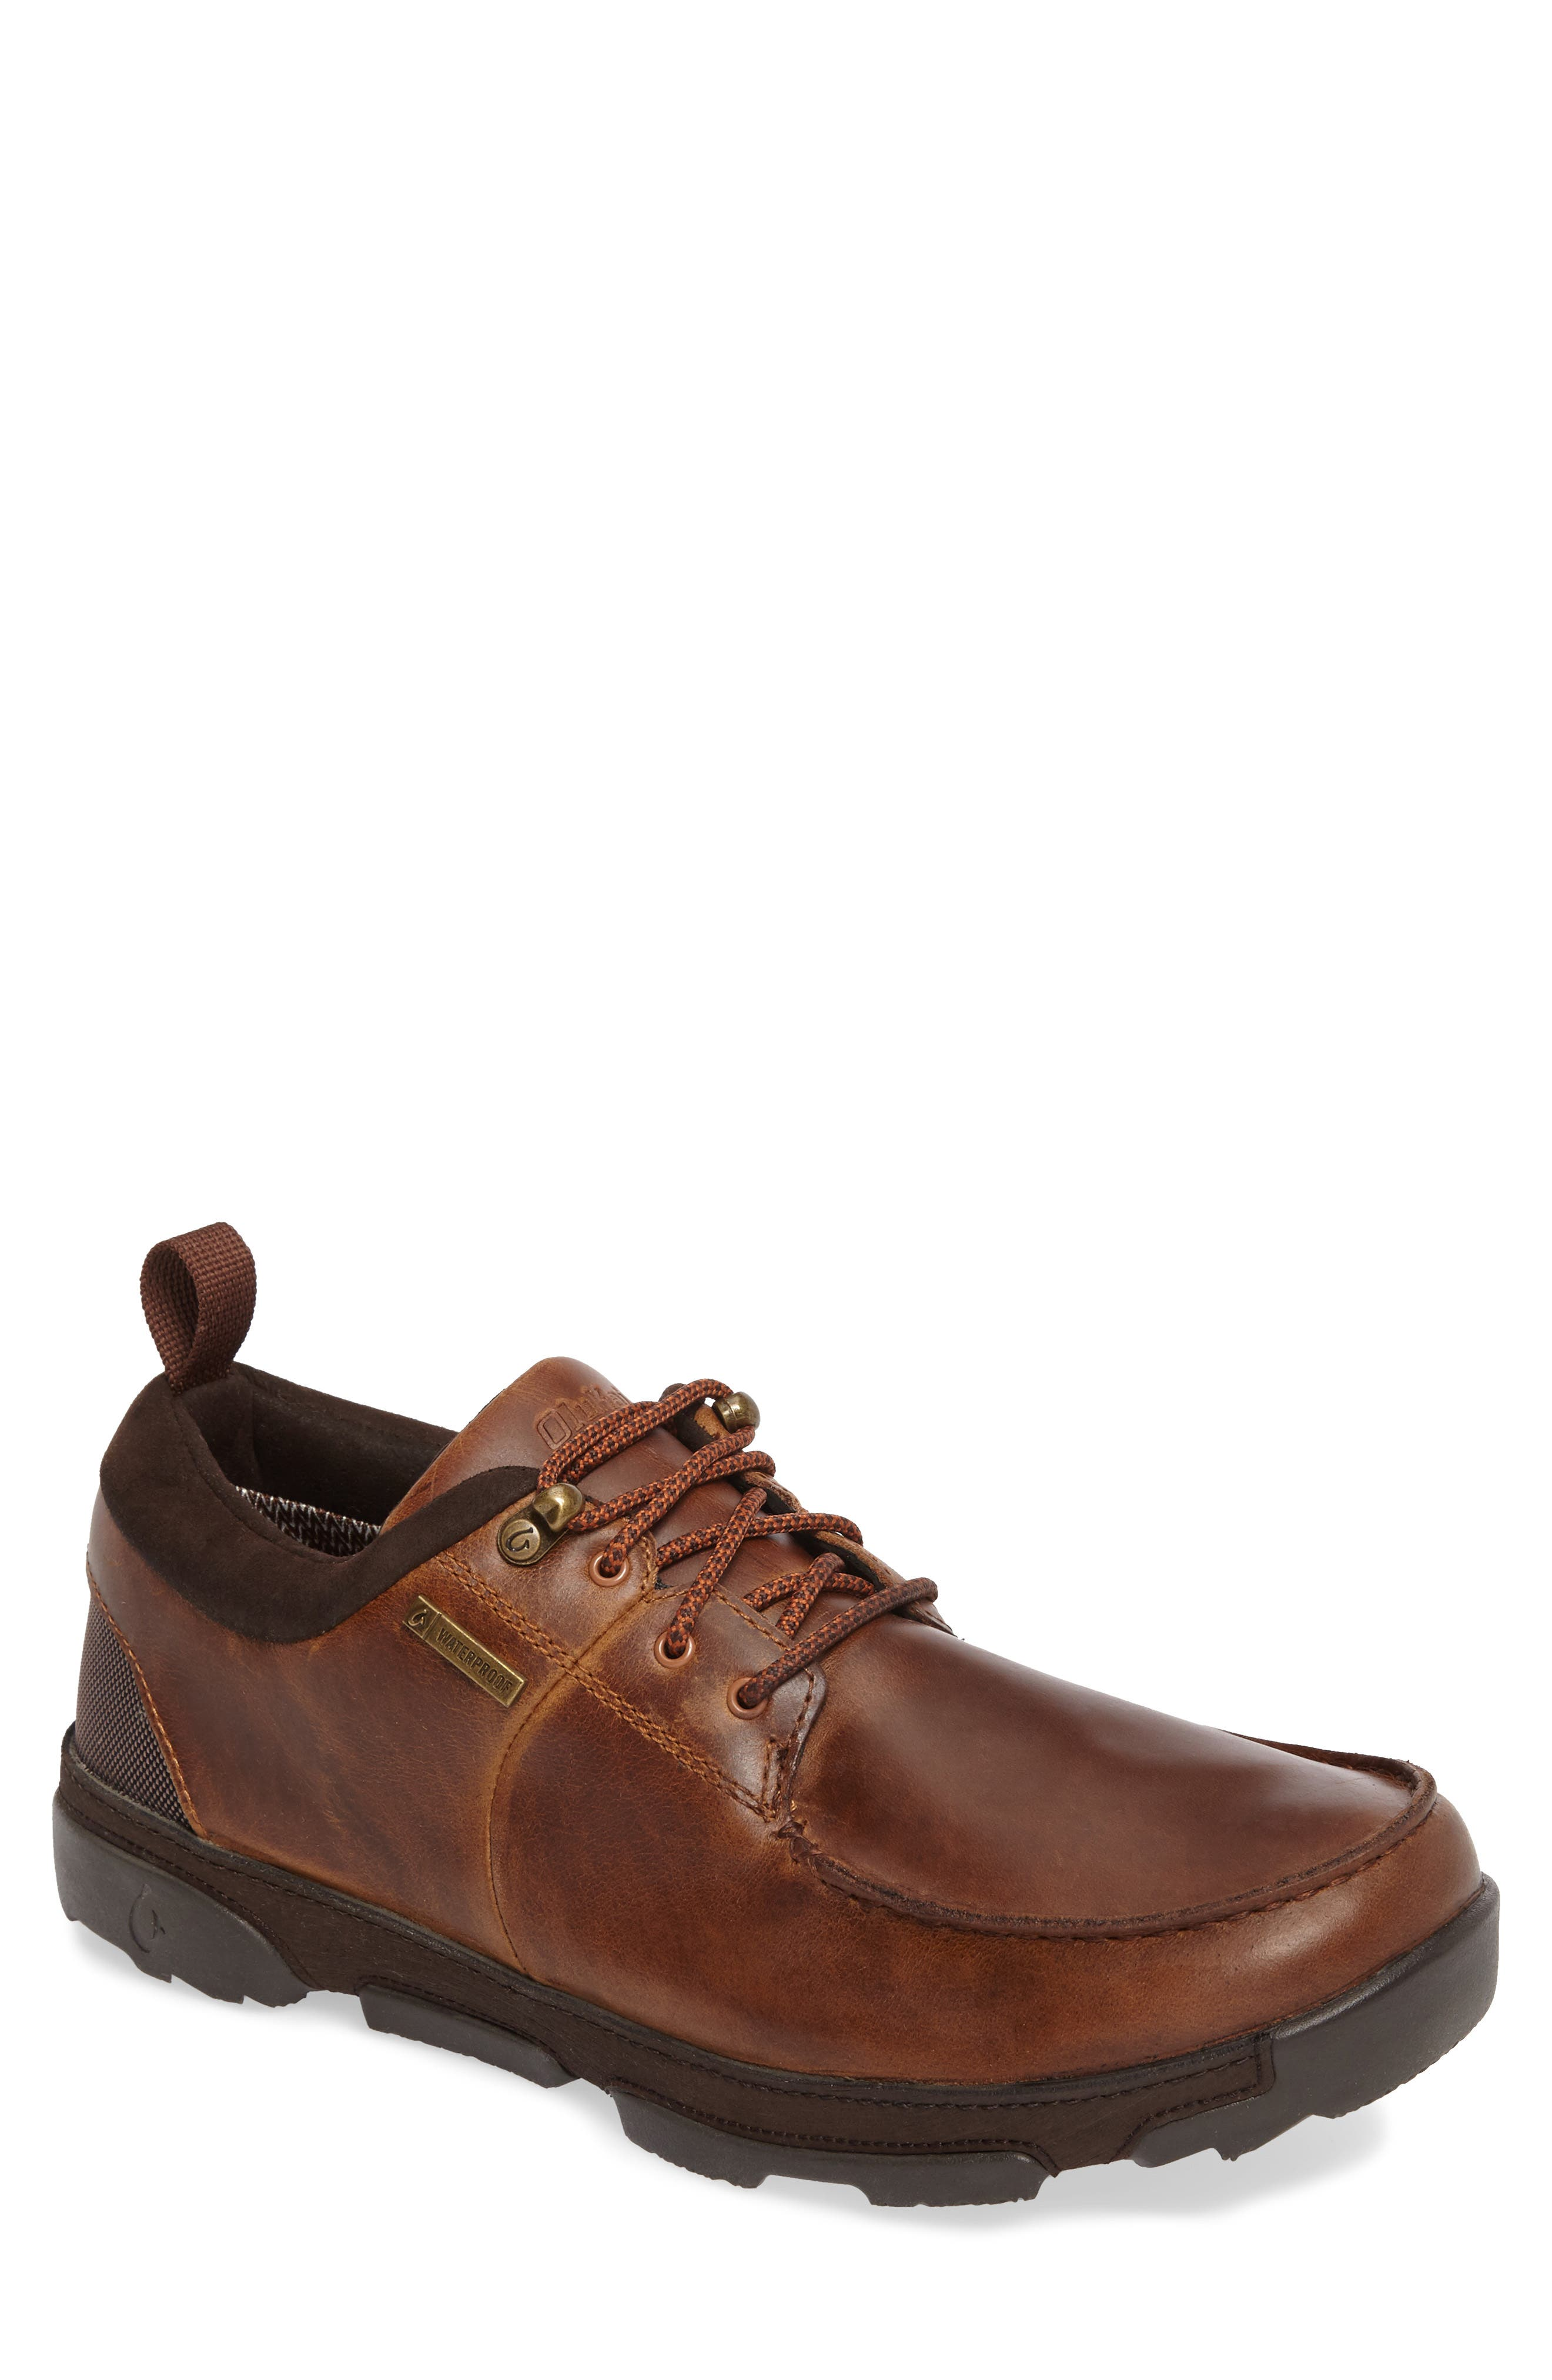 Makoa Waterproof Shoe,                         Main,                         color, Fox/ Dark Wood Leather